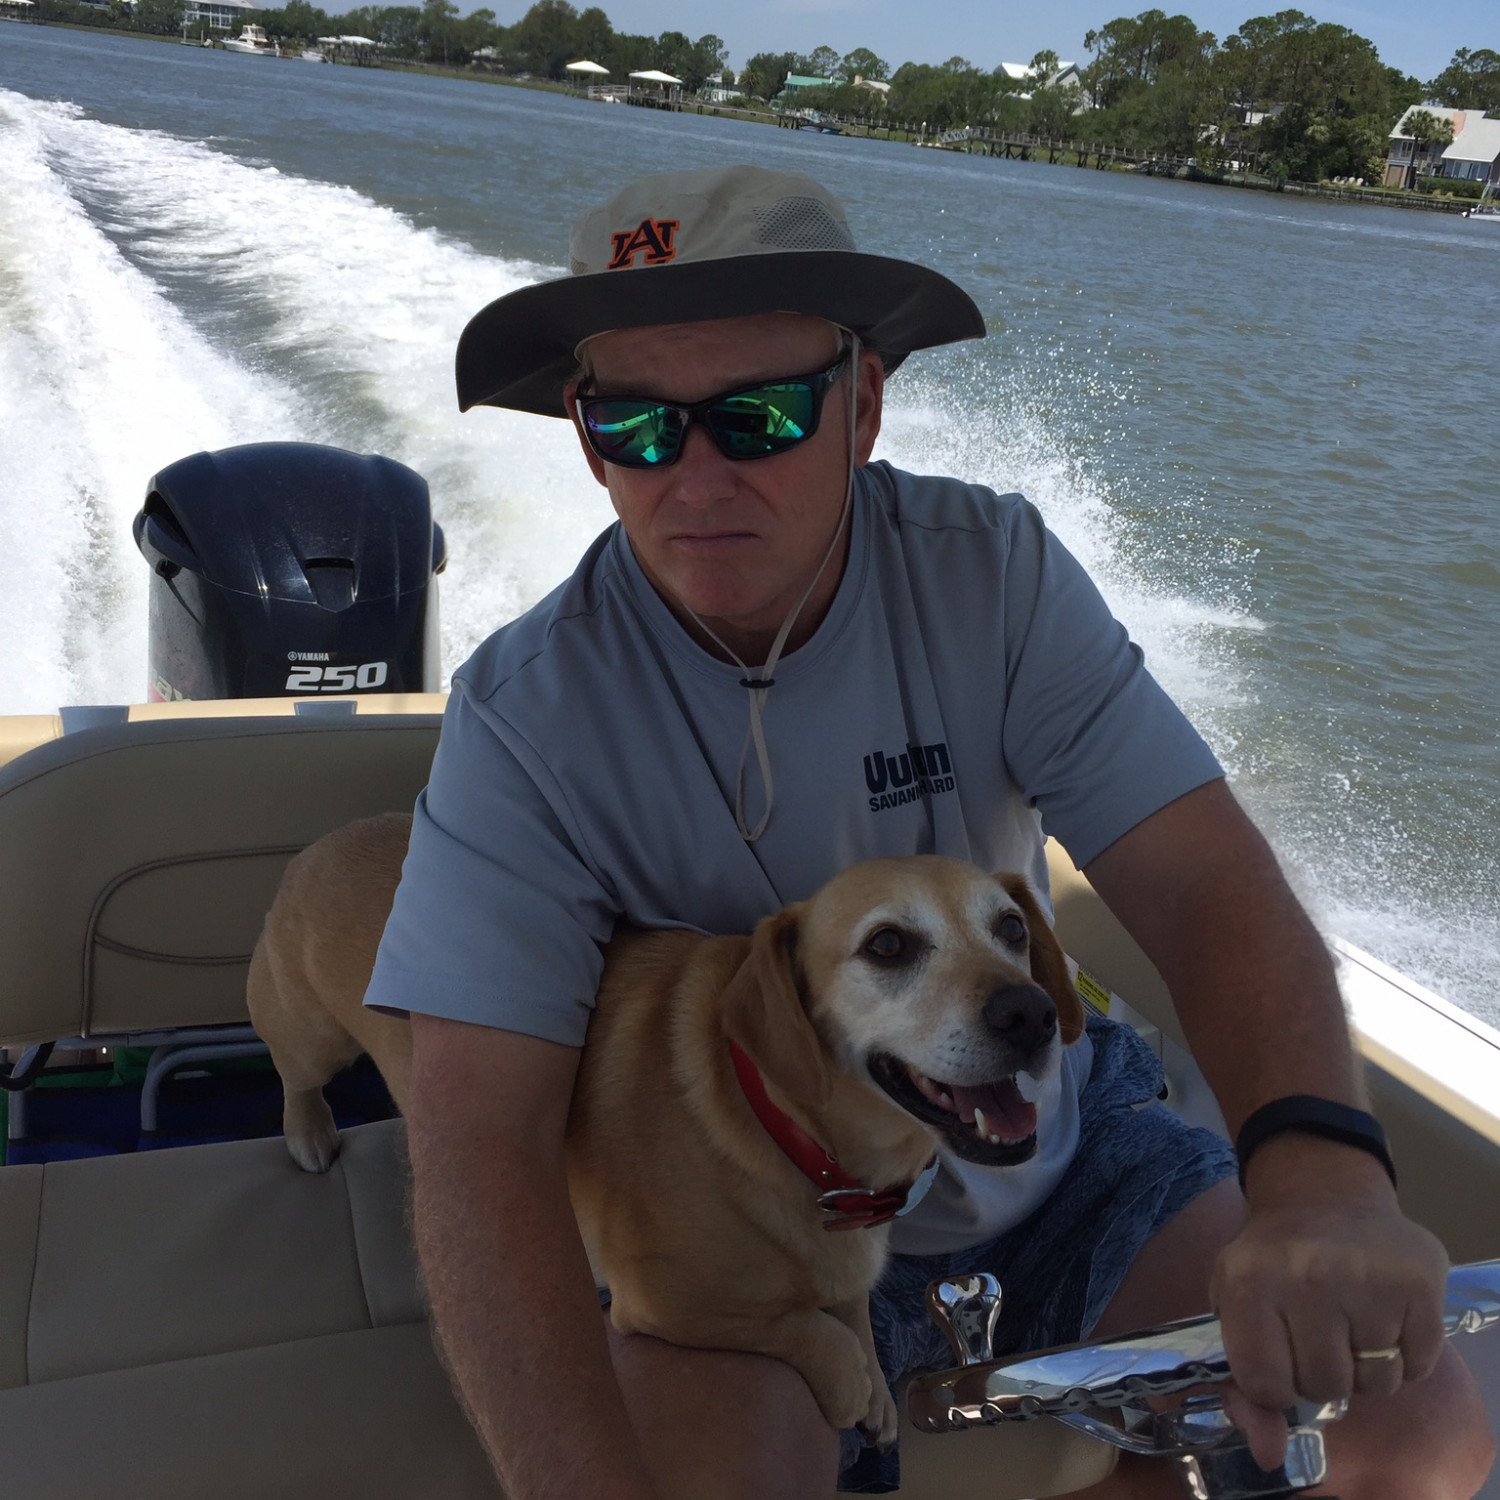 Title: Out with the dog! - On board their Sportsman Heritage 231 Center Console - Location: Tybee, GA. Participating in the Photo Contest #SportsmanApril2018